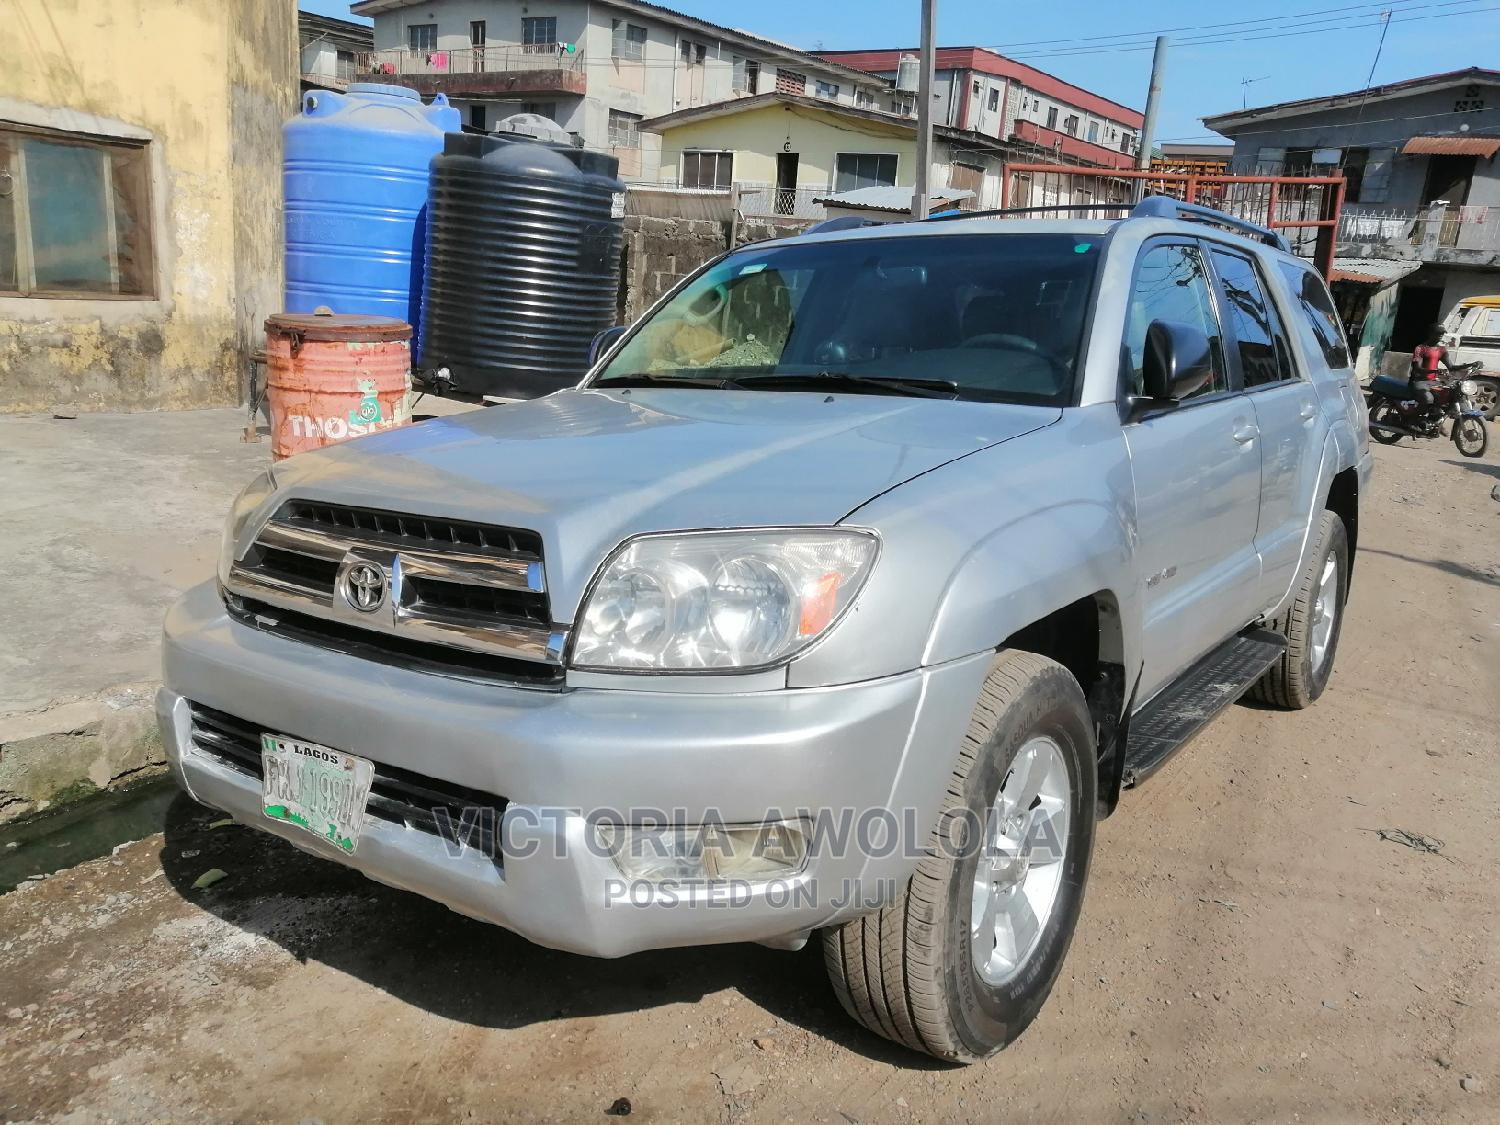 Toyota 4-Runner 2006 SR5 4x4 V6 Silver   Cars for sale in Apapa, Lagos State, Nigeria